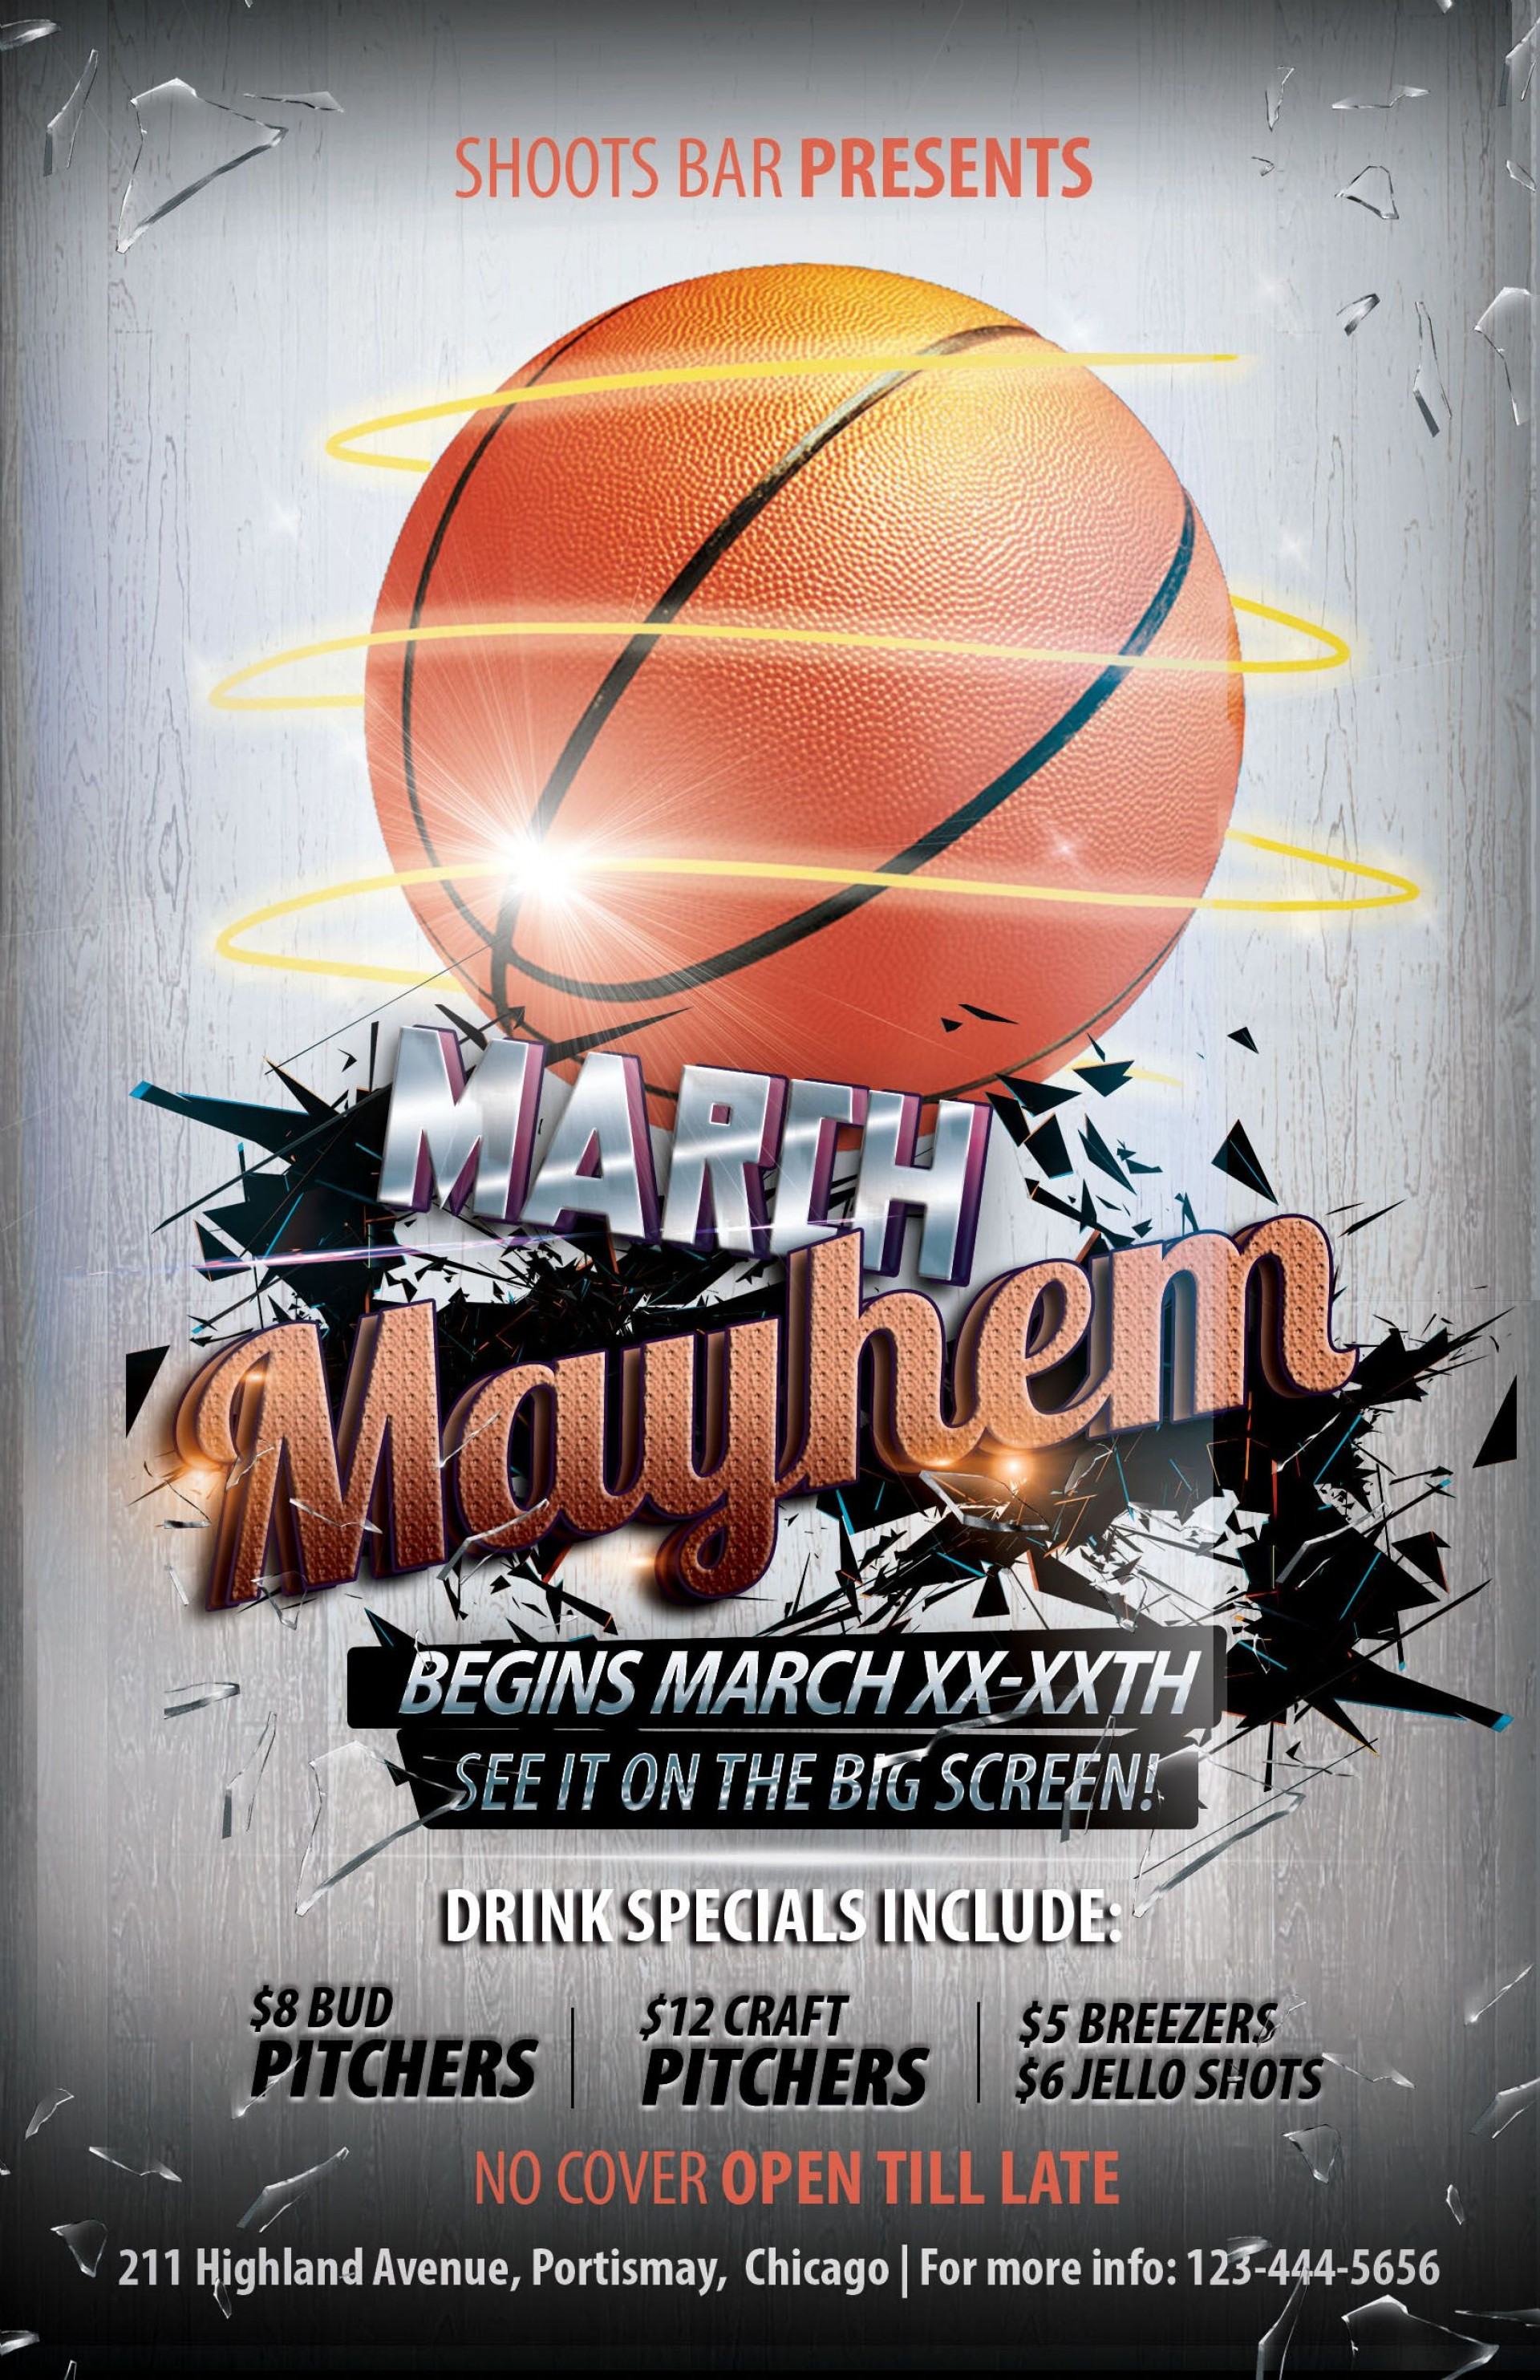 005 Simple Basketball Flyer Template Free Highest Clarity  Brochure Tryout Camp1920